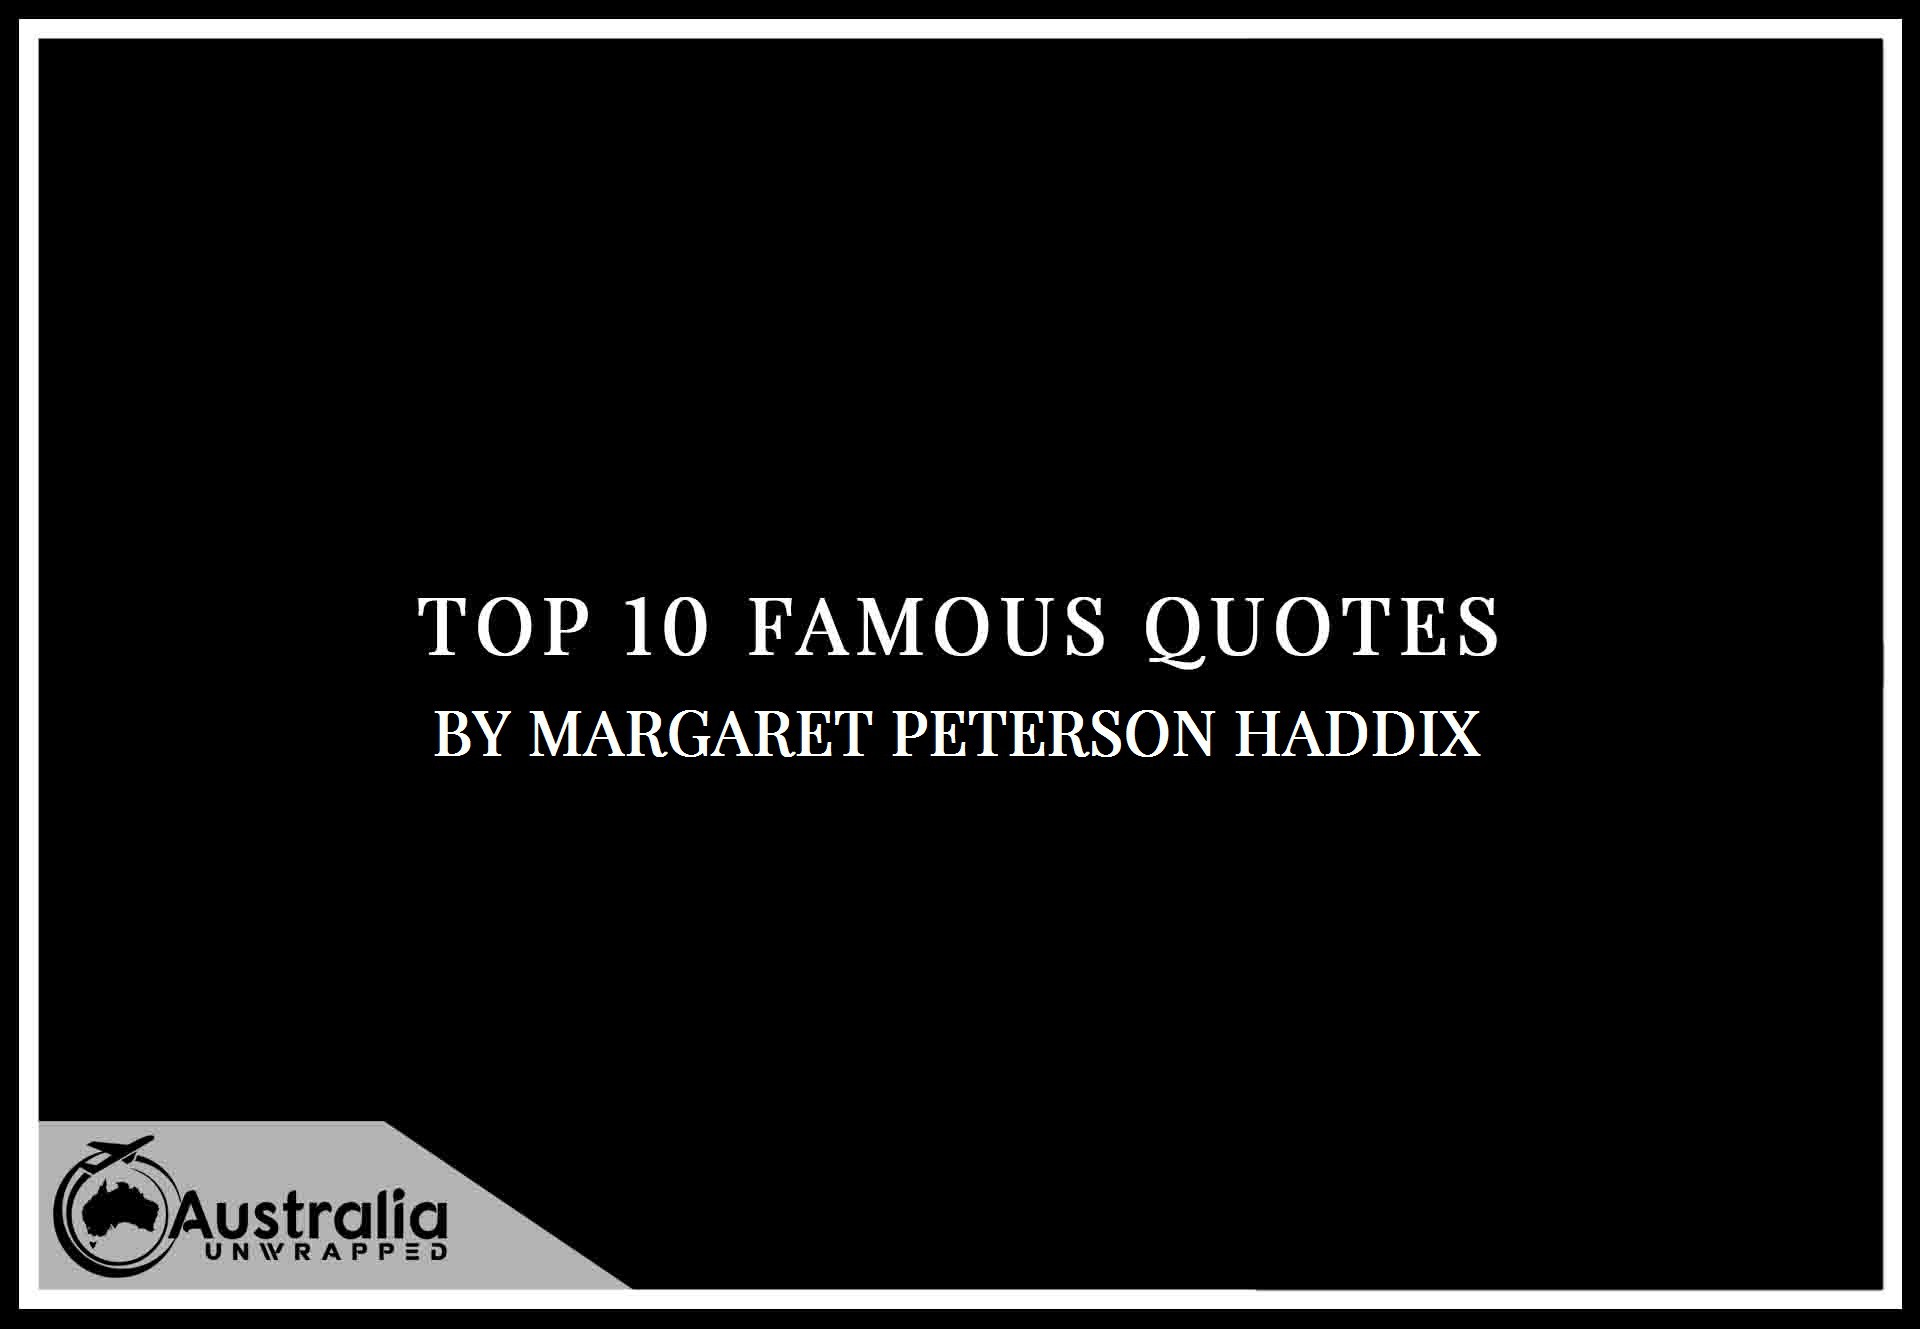 Margaret Peterson Haddix's Top 10 Popular and Famous Quotes